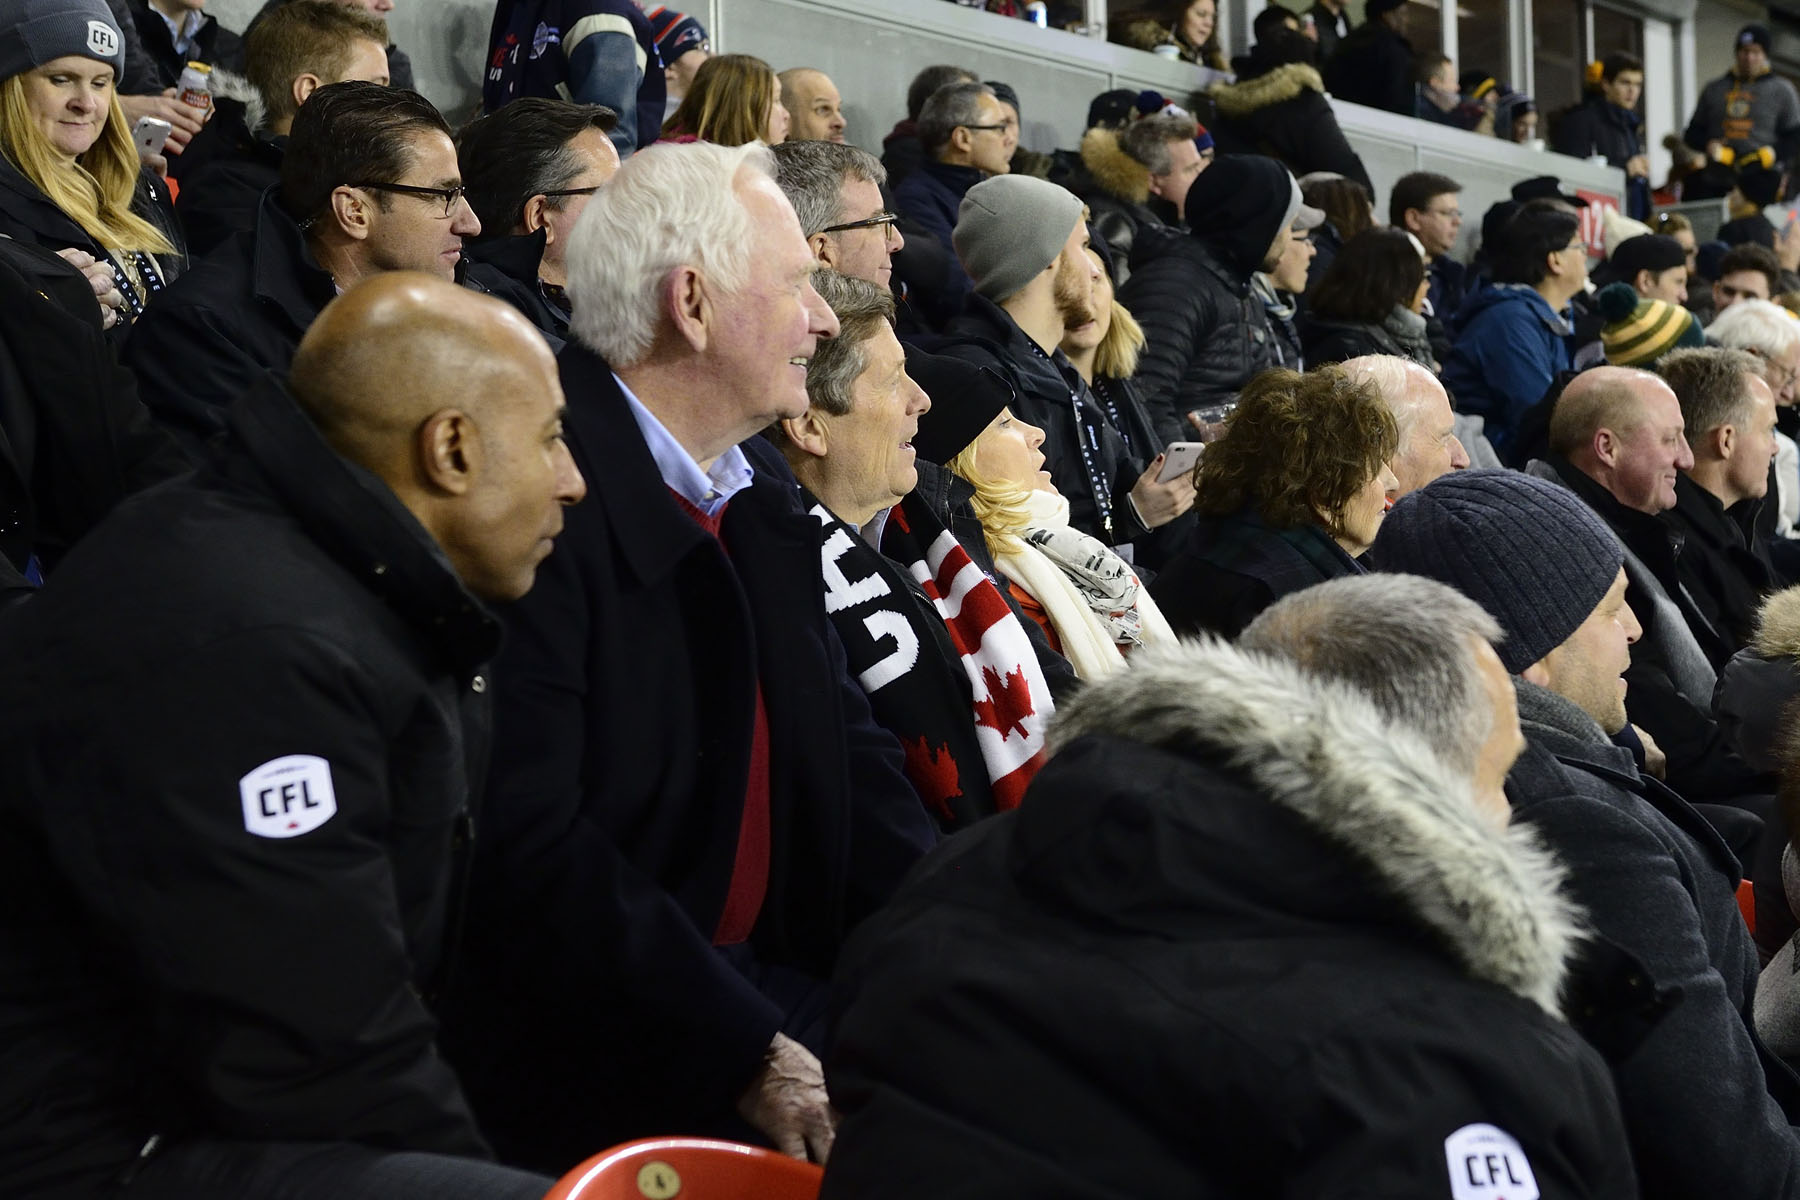 The Governor General, joined by CFL Commissioner Jeffrey Orridge (left), cheered on both teams.